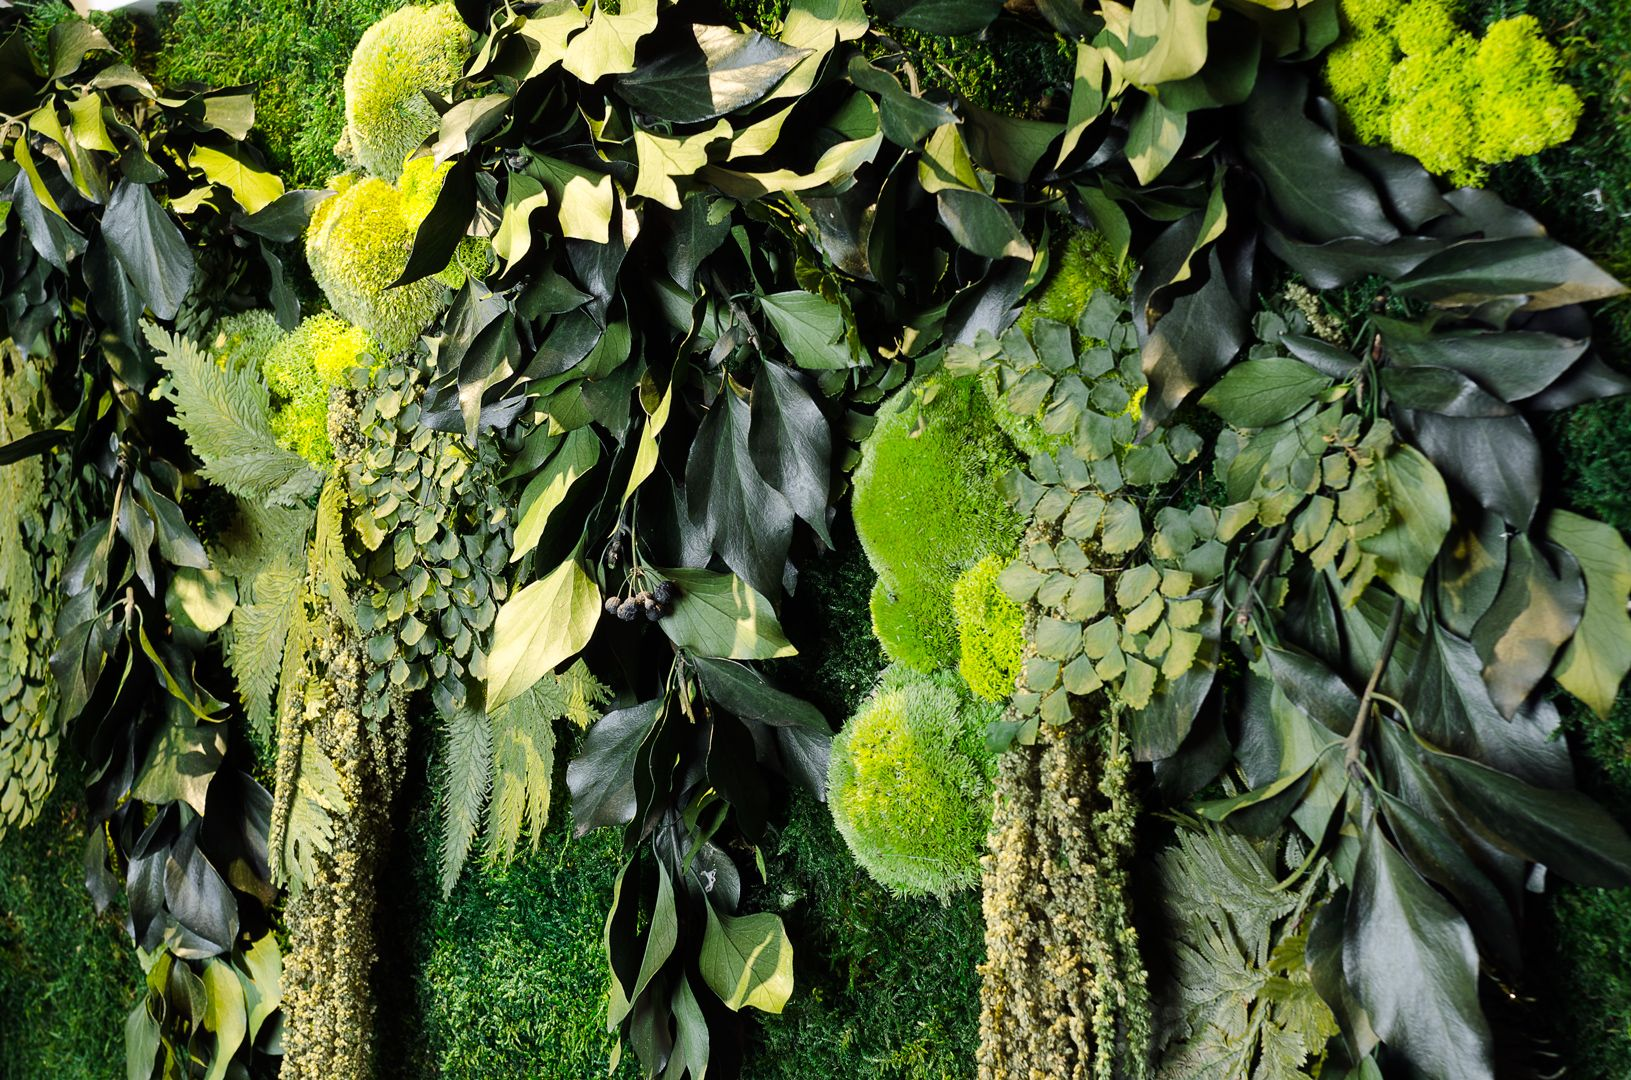 Pareti Verdi Verticali Costi mossdesigns by moss trend - stabilized plants. the green